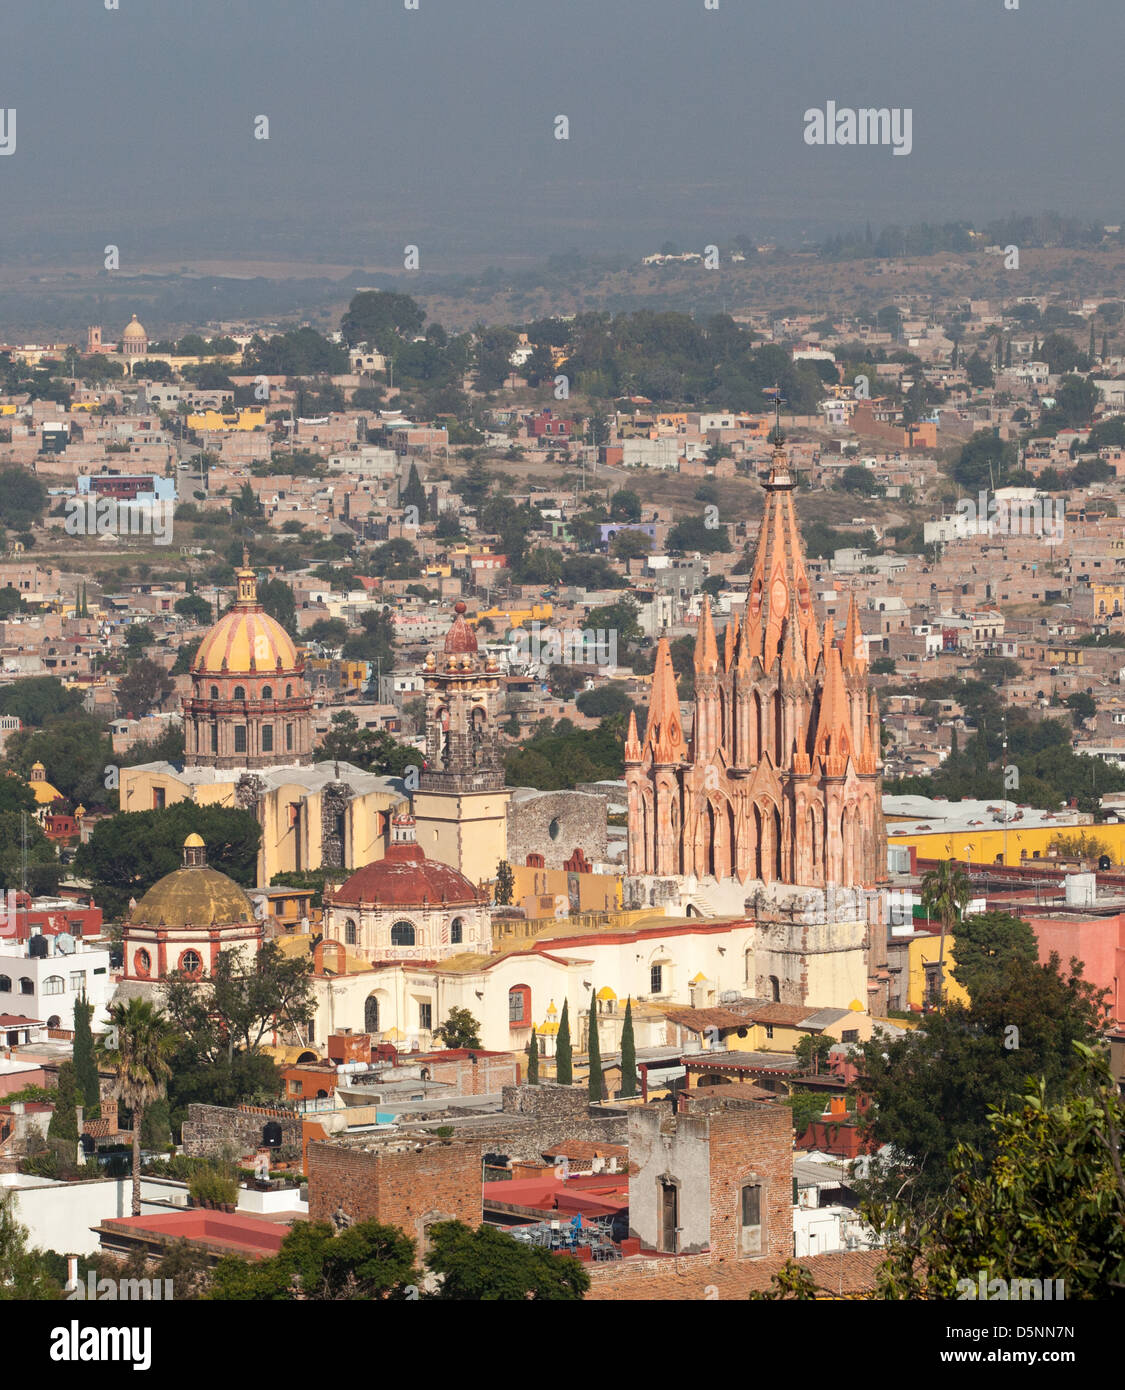 Cityscape of the Spanish colonial city of San Miguel de Allende, Guanajuato, Mexico with La Parroquia in the city - Stock Image